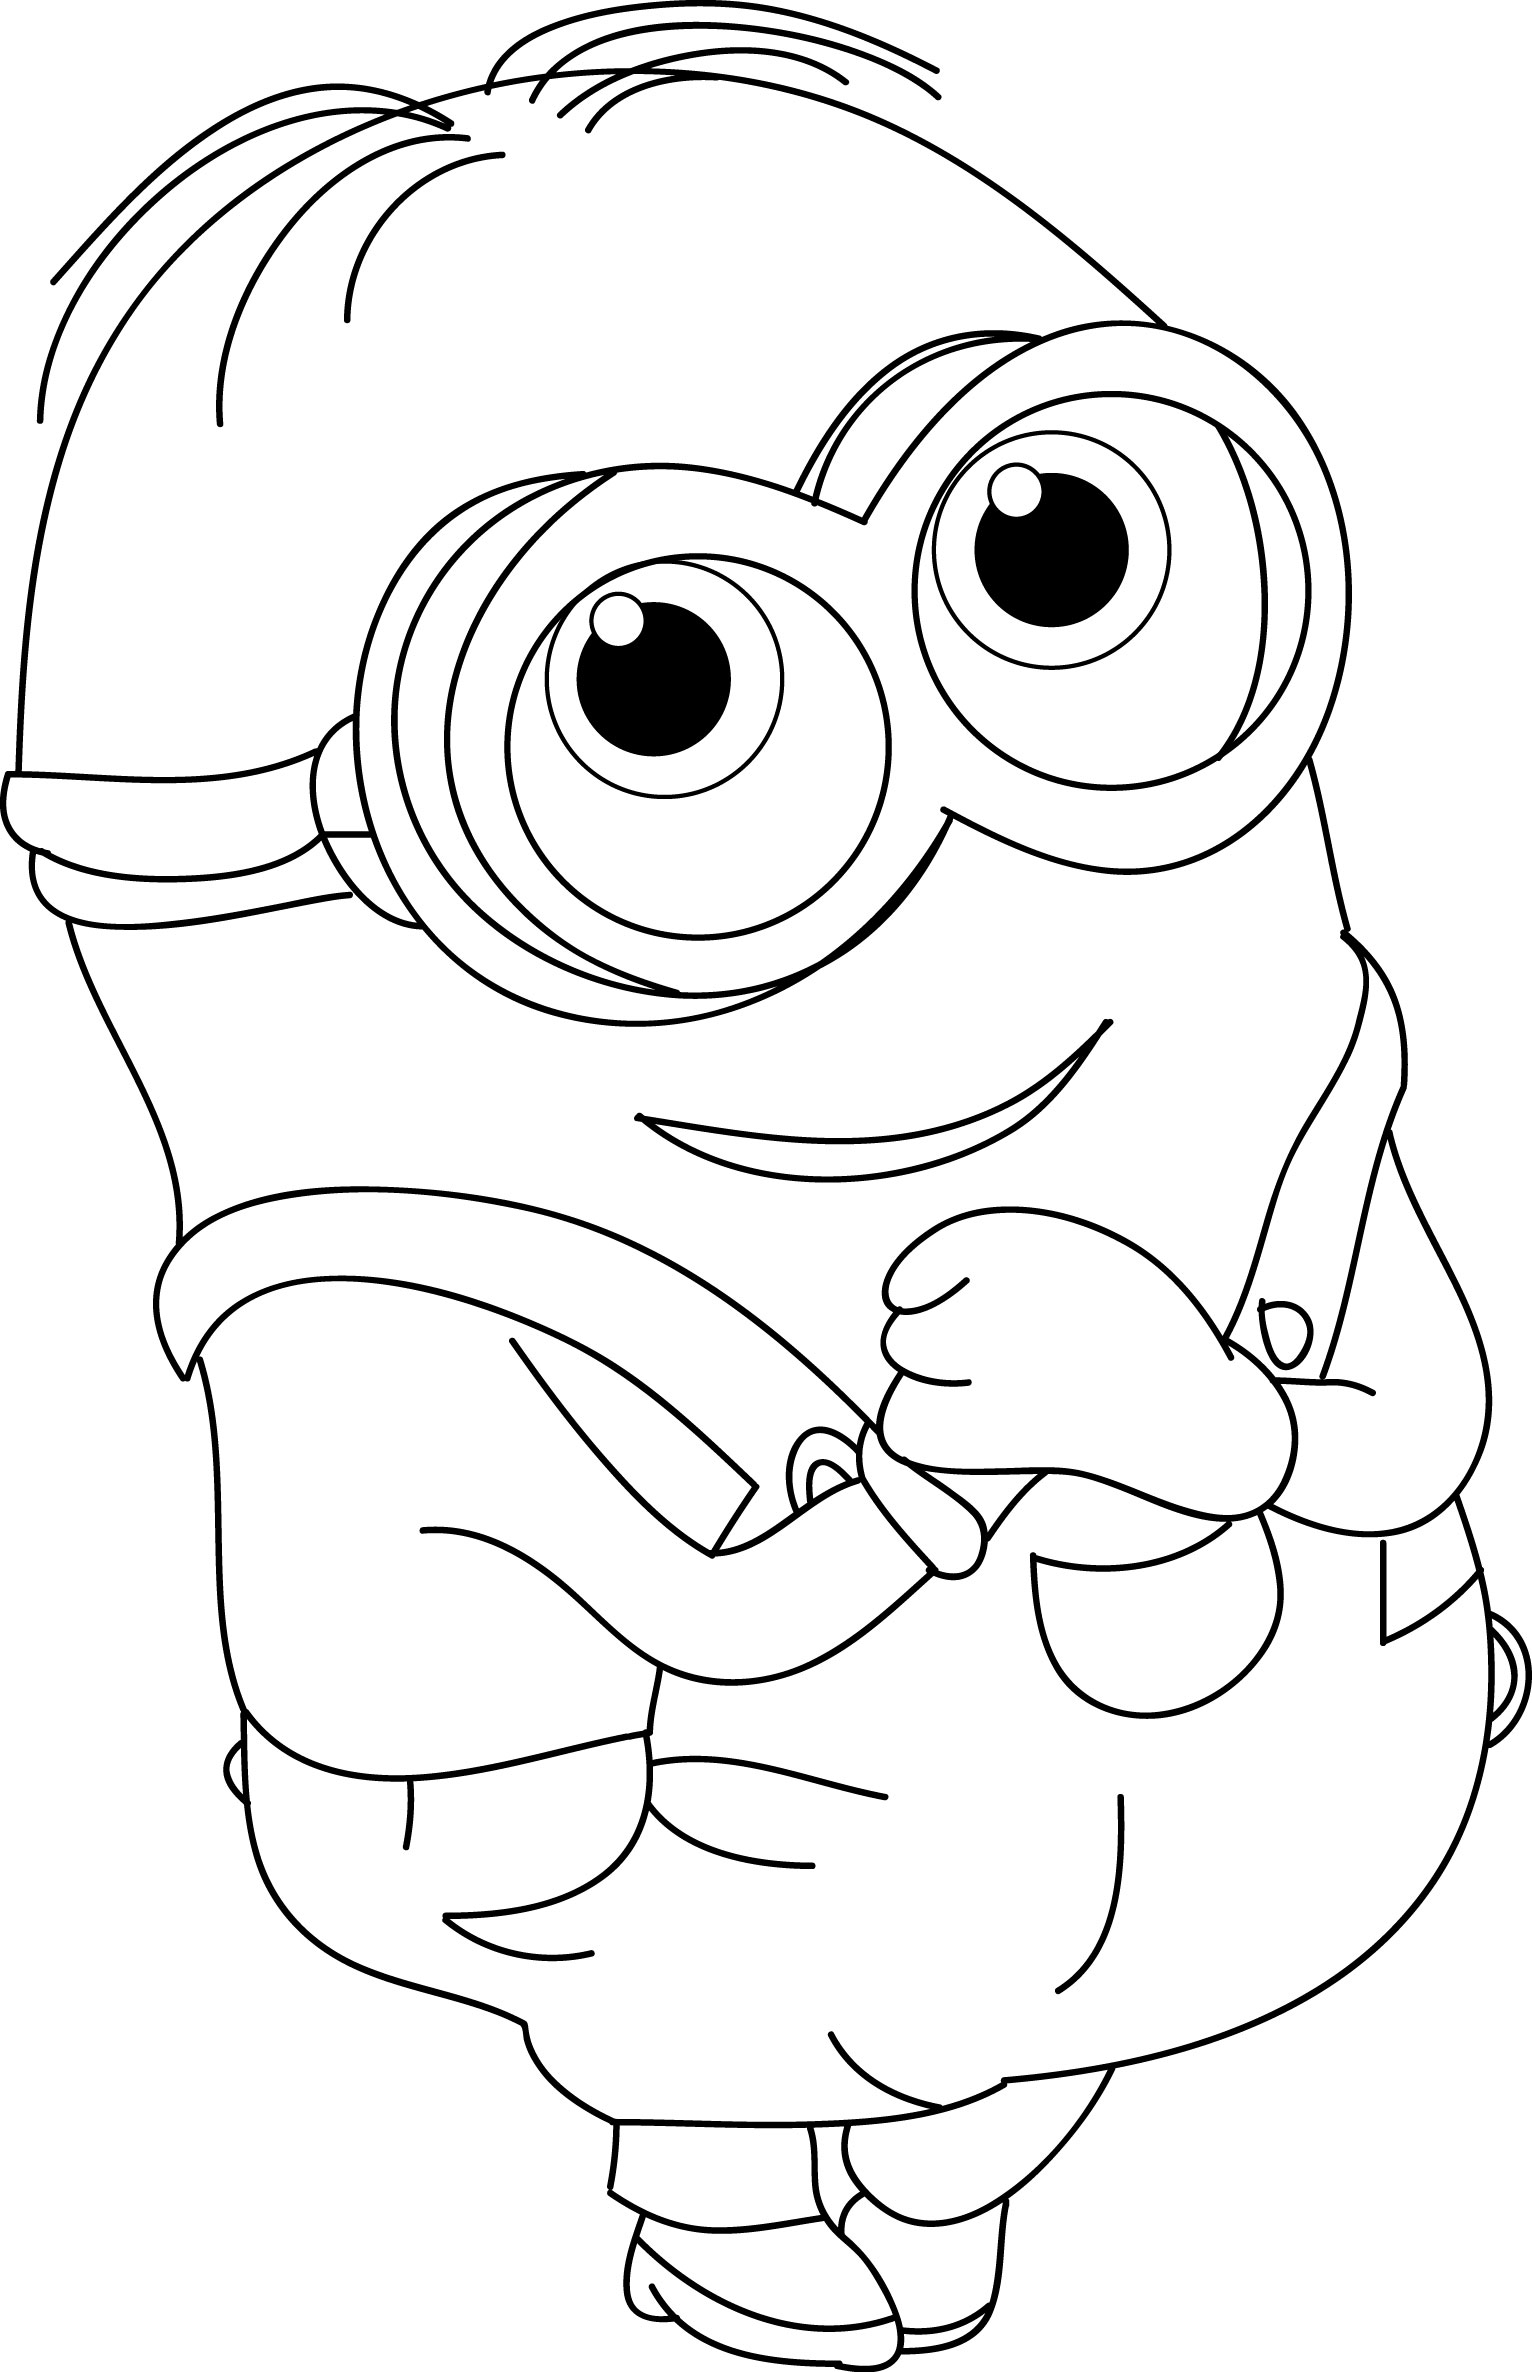 1532x2372 With Cute Despicable Me Minion Coloring Pages